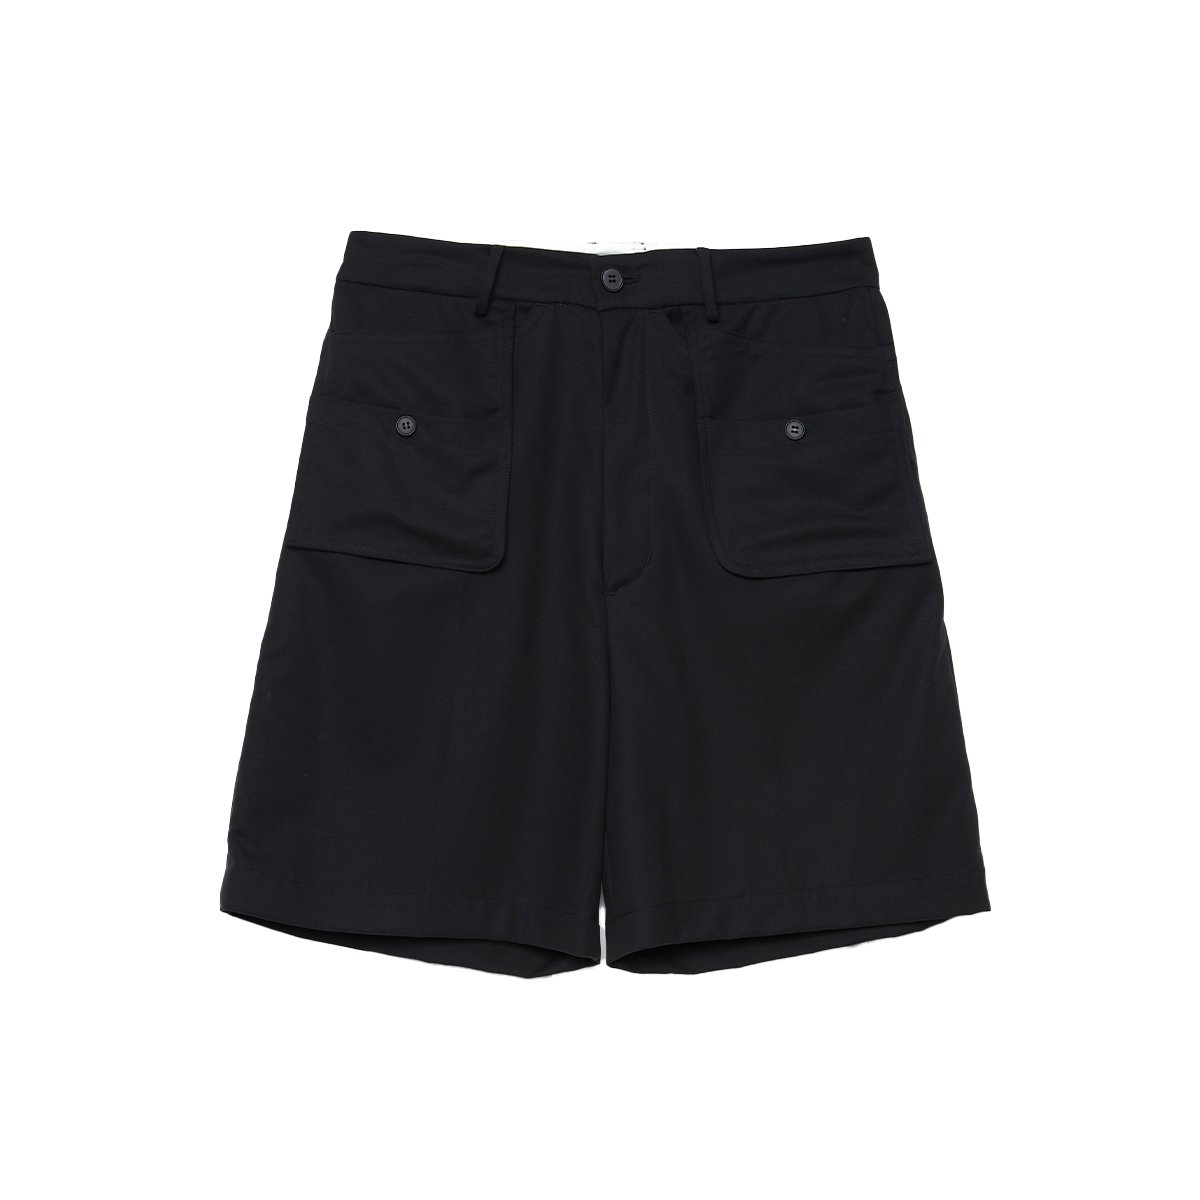 <img class='new_mark_img1' src='https://img.shop-pro.jp/img/new/icons5.gif' style='border:none;display:inline;margin:0px;padding:0px;width:auto;' />Workaholic Utility Short Pants / BLACK